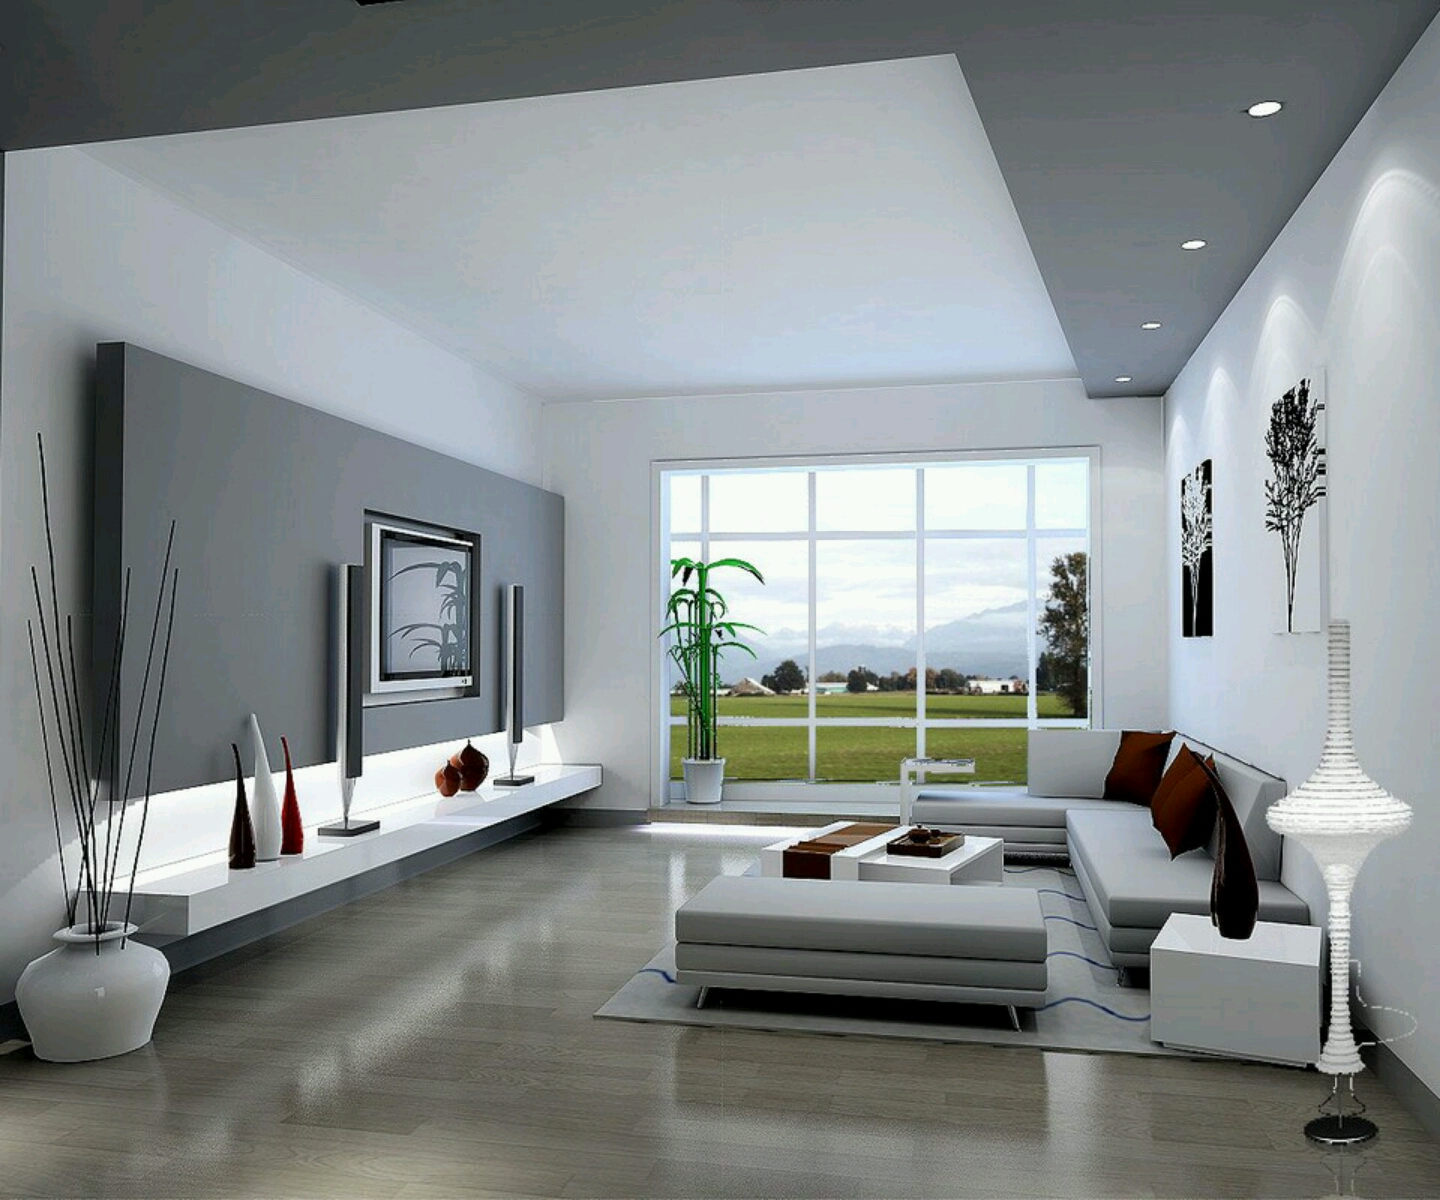 Living Room Modern Living Room Decor Ideas modern living room interior design ideas lzk gallery gallery